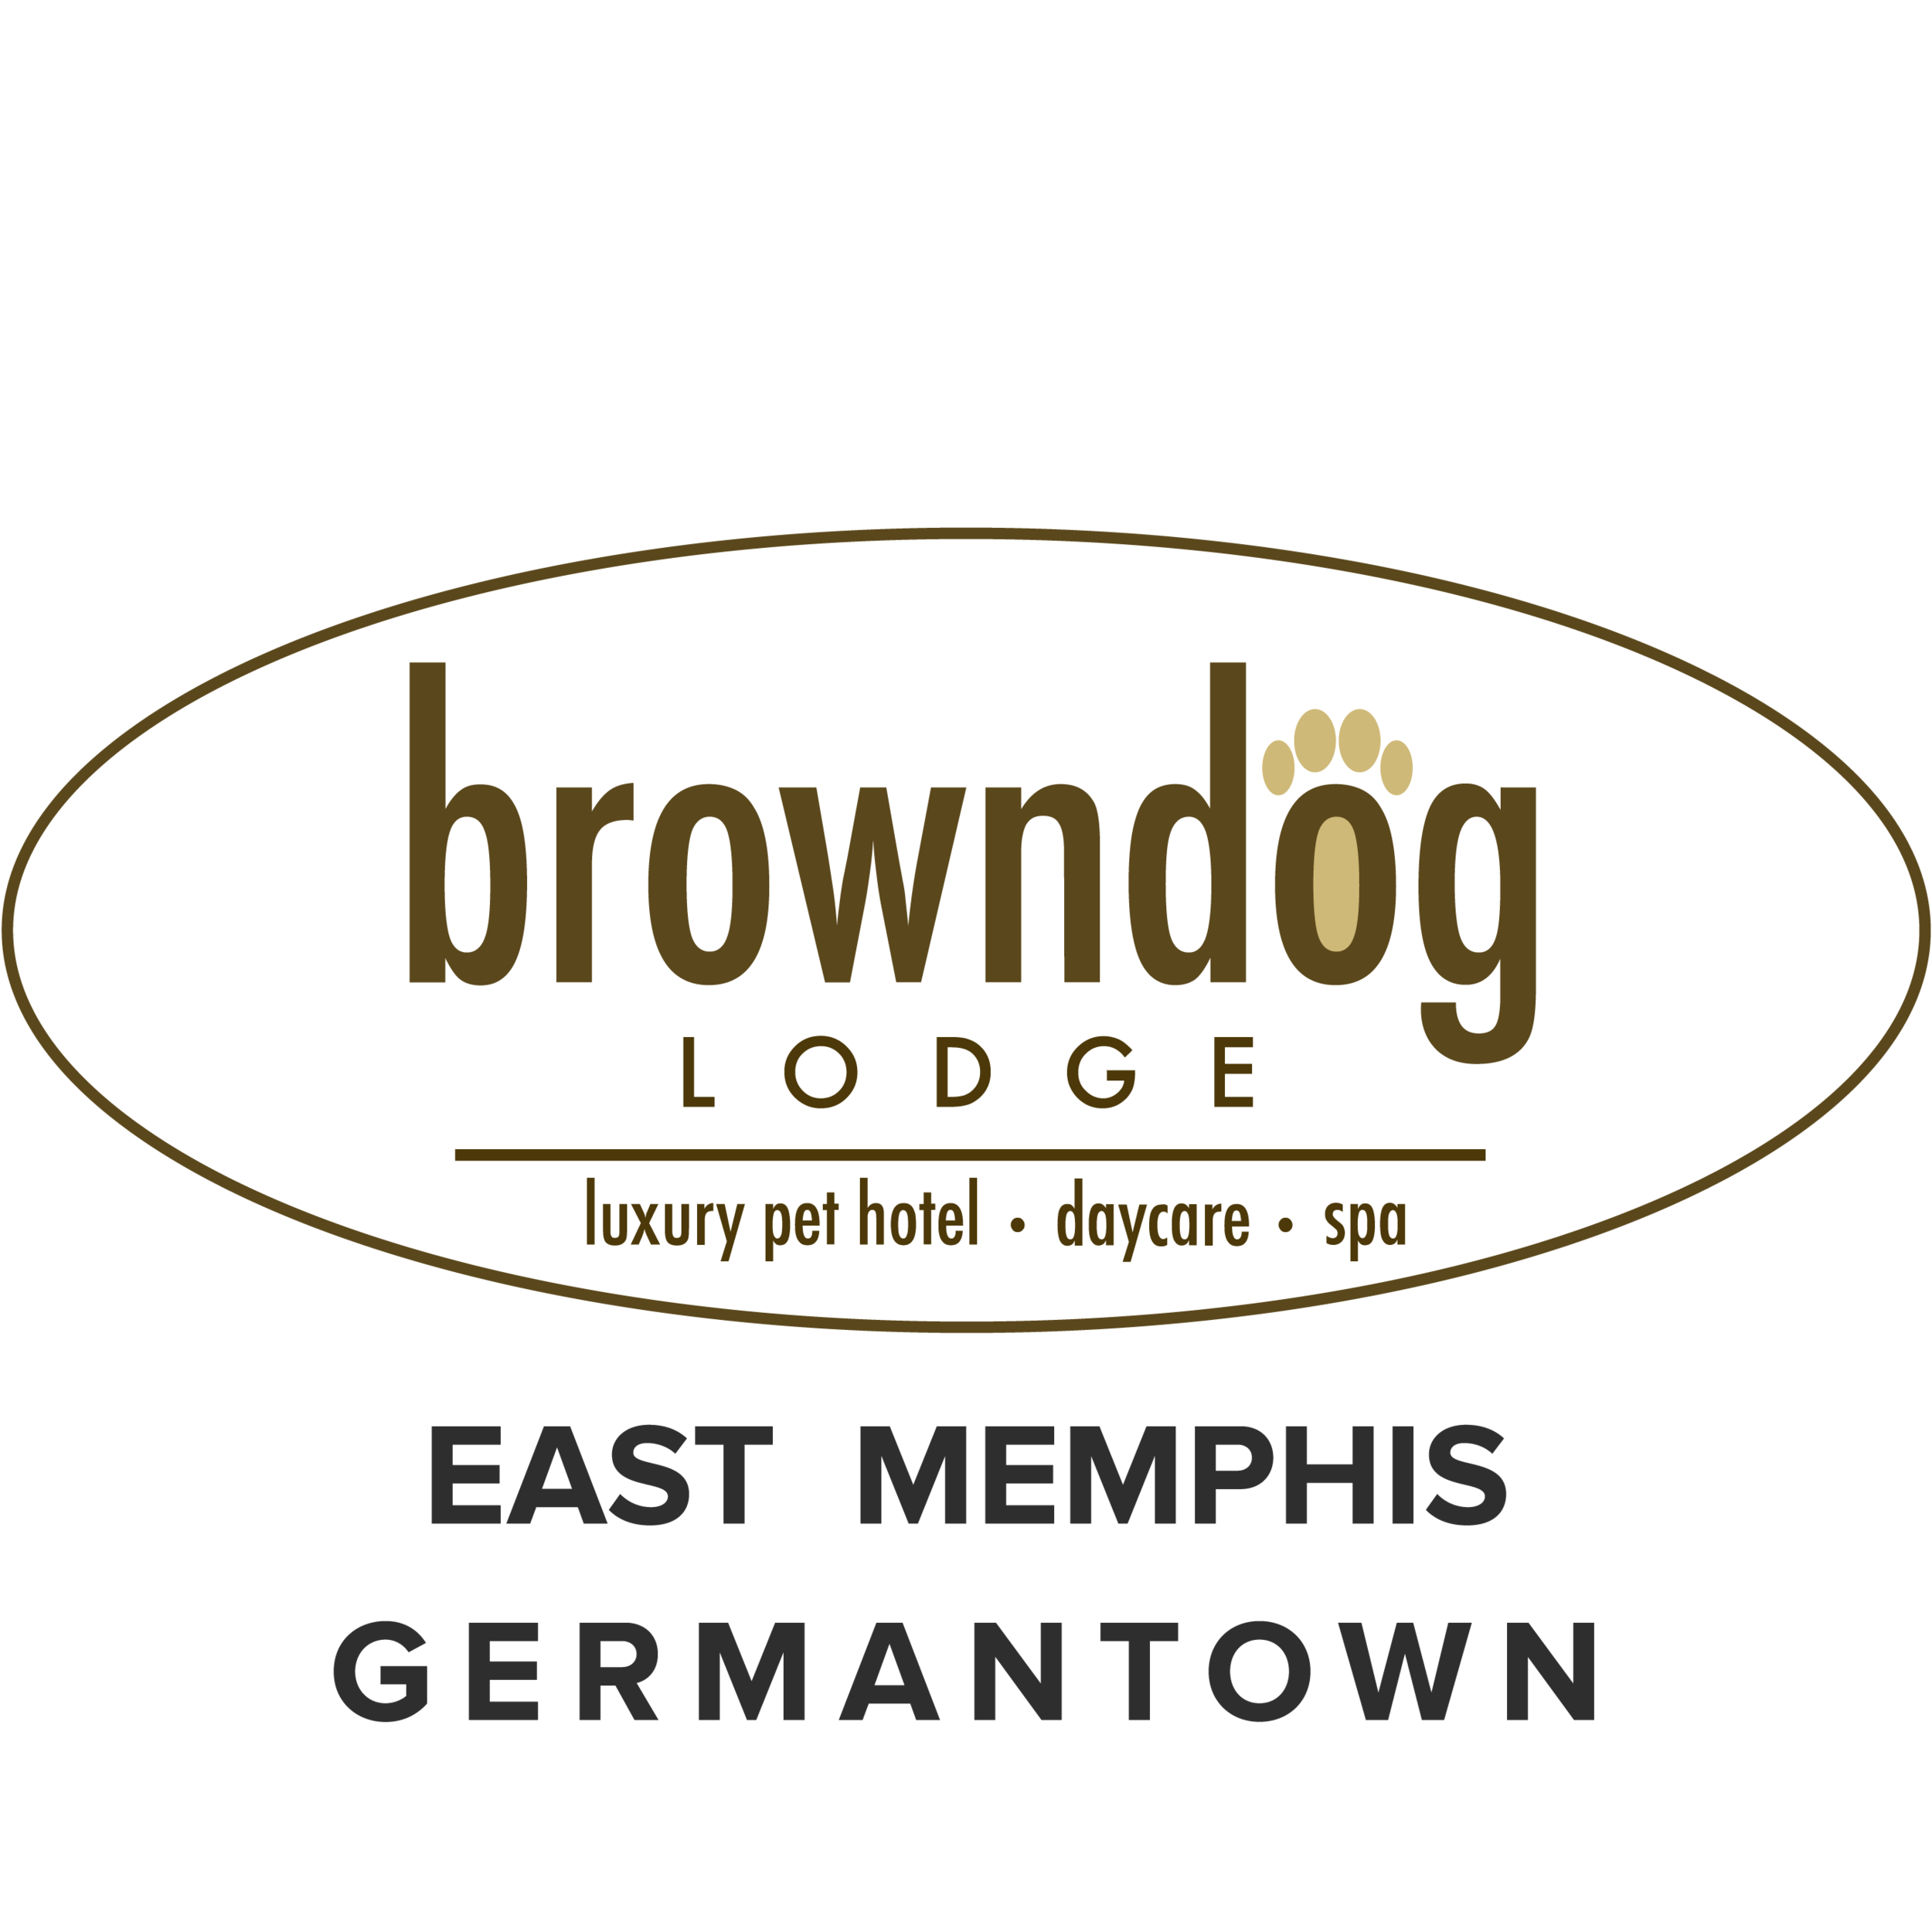 BrownDog Lodge